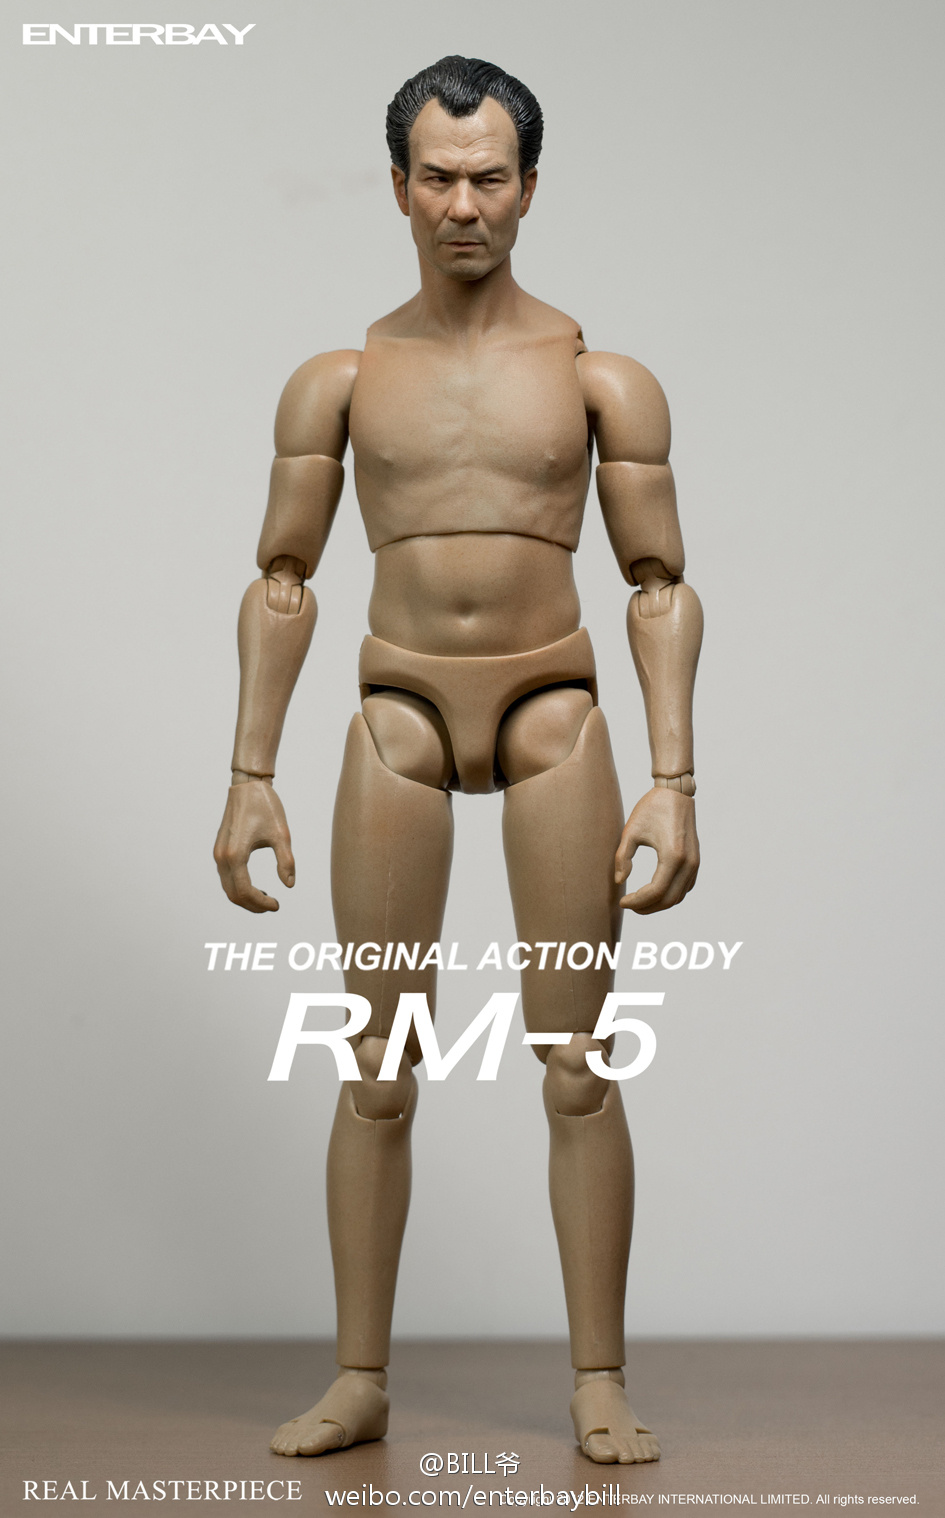 [Enterbay] Original Action Body - RM-5 With Style - 313 69464edegw1doyhls1uqfj